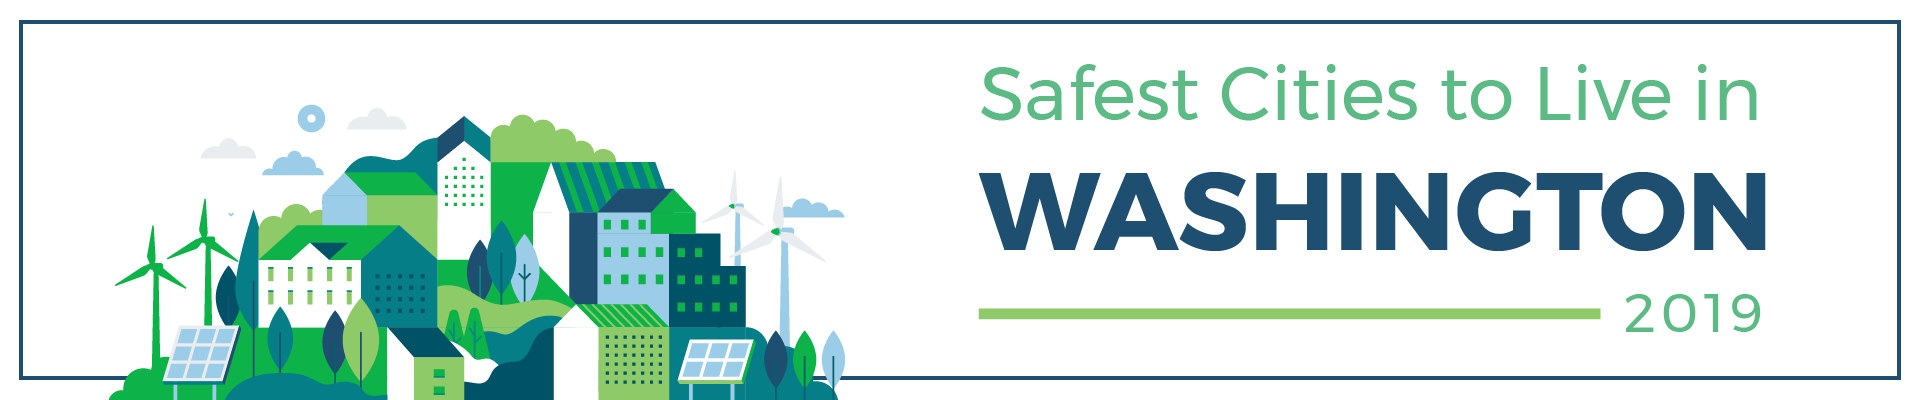 header - safest_cities_washington_2019